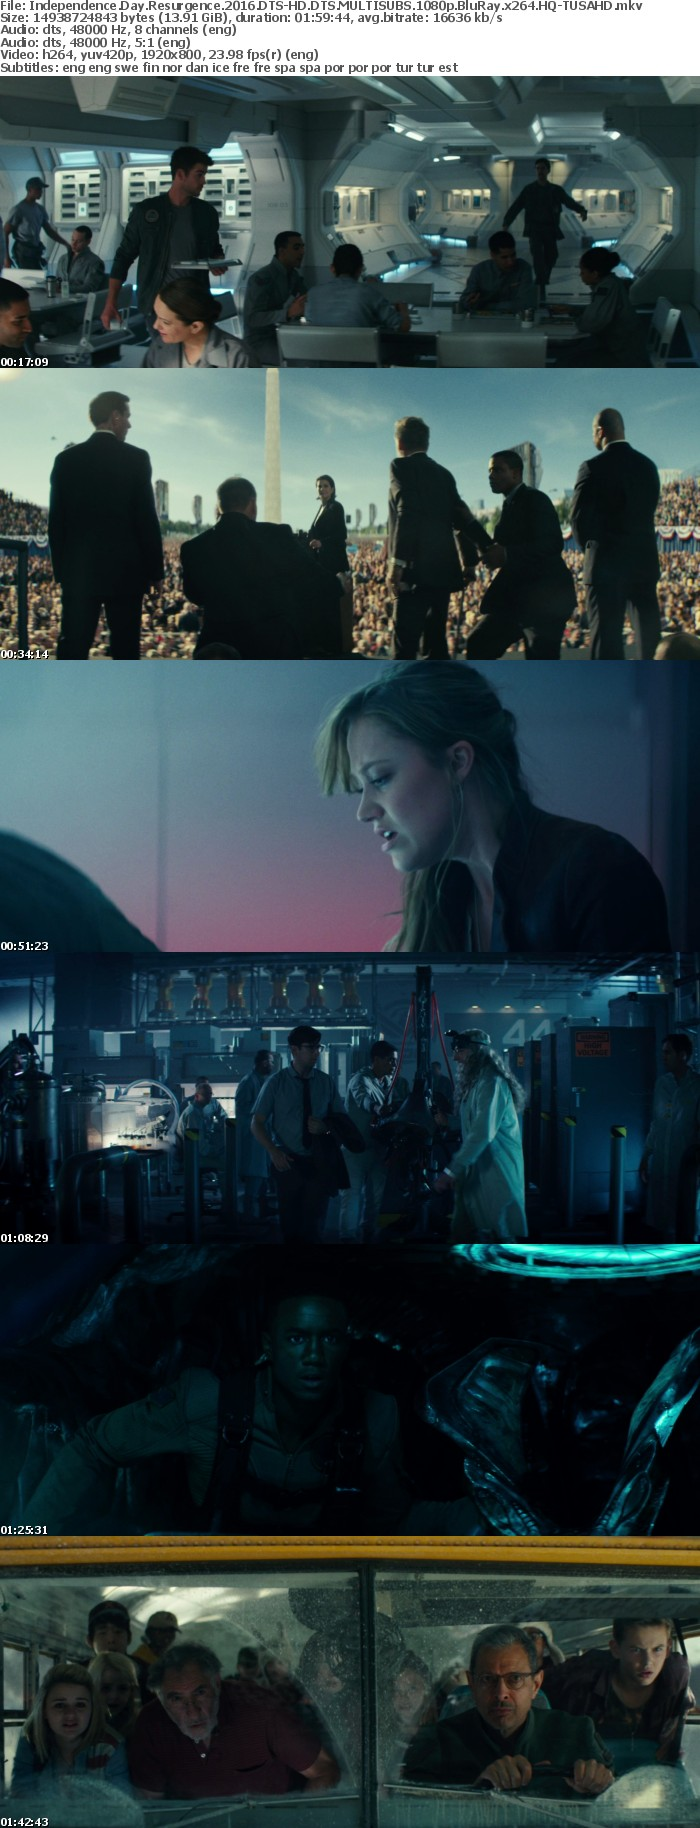 Independence Day Resurgence 2016 DTS-HD DTS MULTISUBS 1080p BluRay x264 HQ-TUSAHD